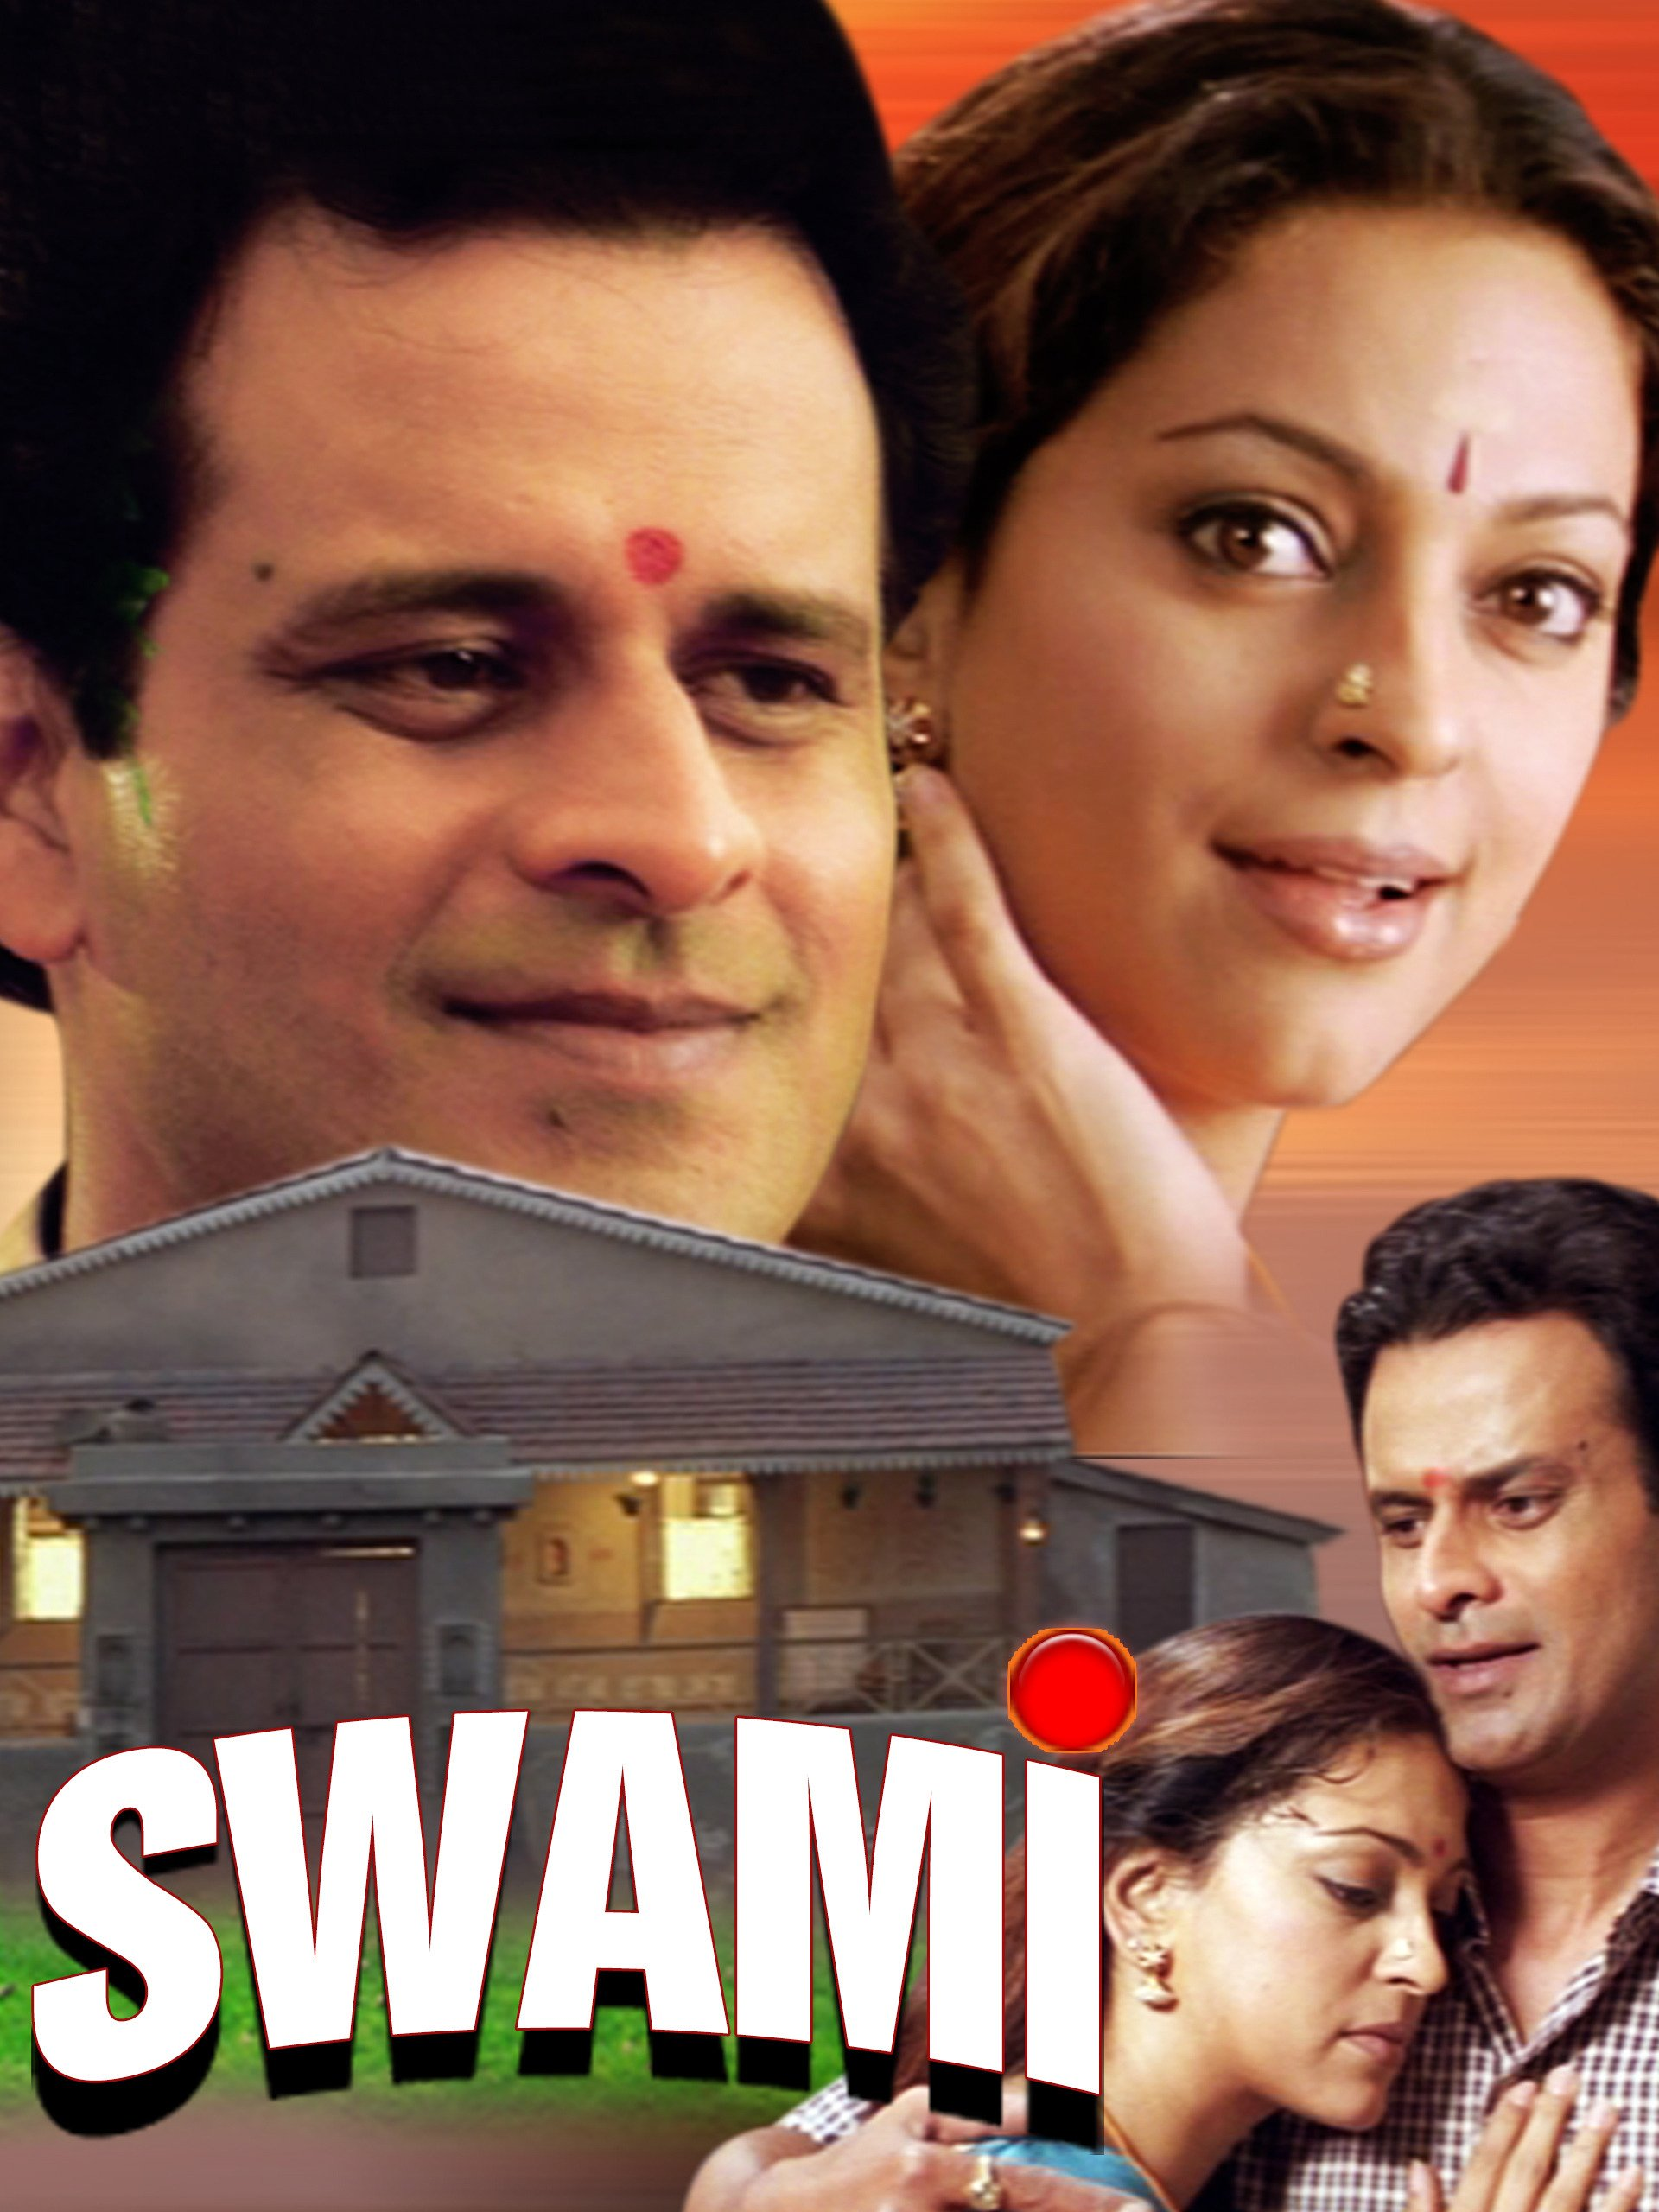 Swami Review 2 5 5 Swami Movie Review Swami 2007 Public Review Film Review